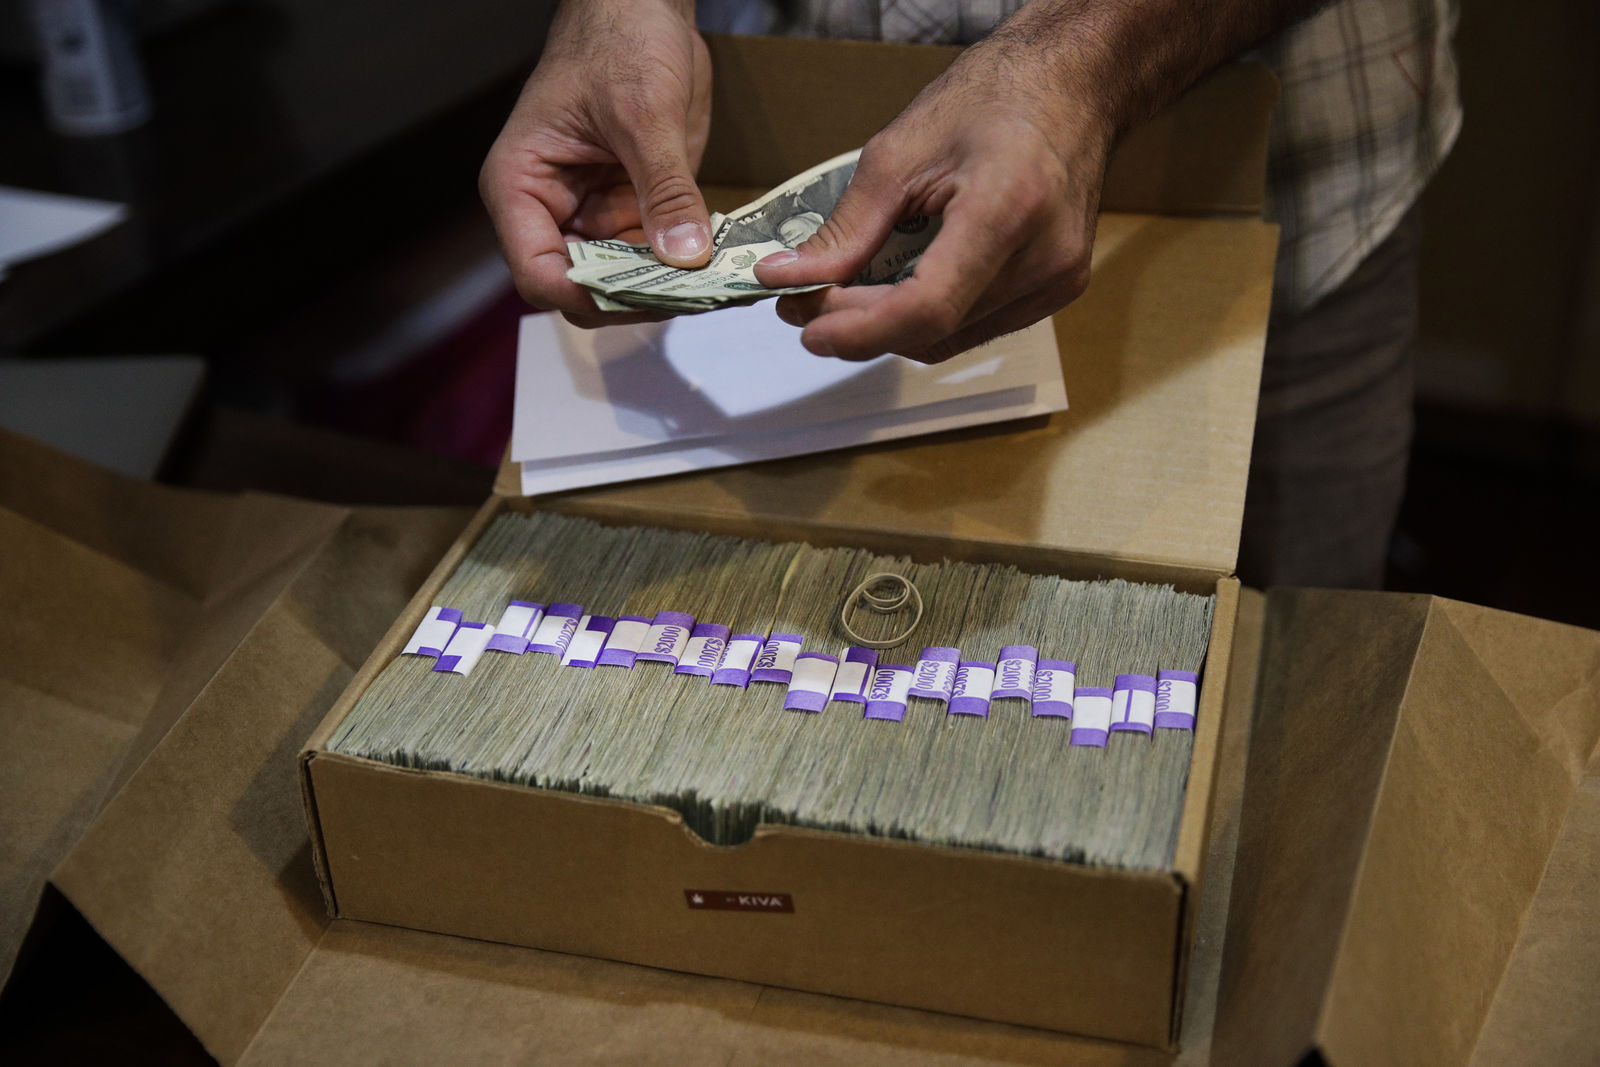 FILE - In this June 27, 2017 file photo, the proprietor of a medical marijuana dispensary prepares his monthly tax payment, over $40,000 in cash, at his Los Angeles store. Congress on Wednesday, Feb. 13, 2019, was urged to fully open the doors of the nation's banking system to the legal marijuana industry, a change that supporters say would reduce the risk of crime and resolve a litany of problems for pot companies from paying taxes to getting a loan. (AP Photo/Jae C. Hong, File)